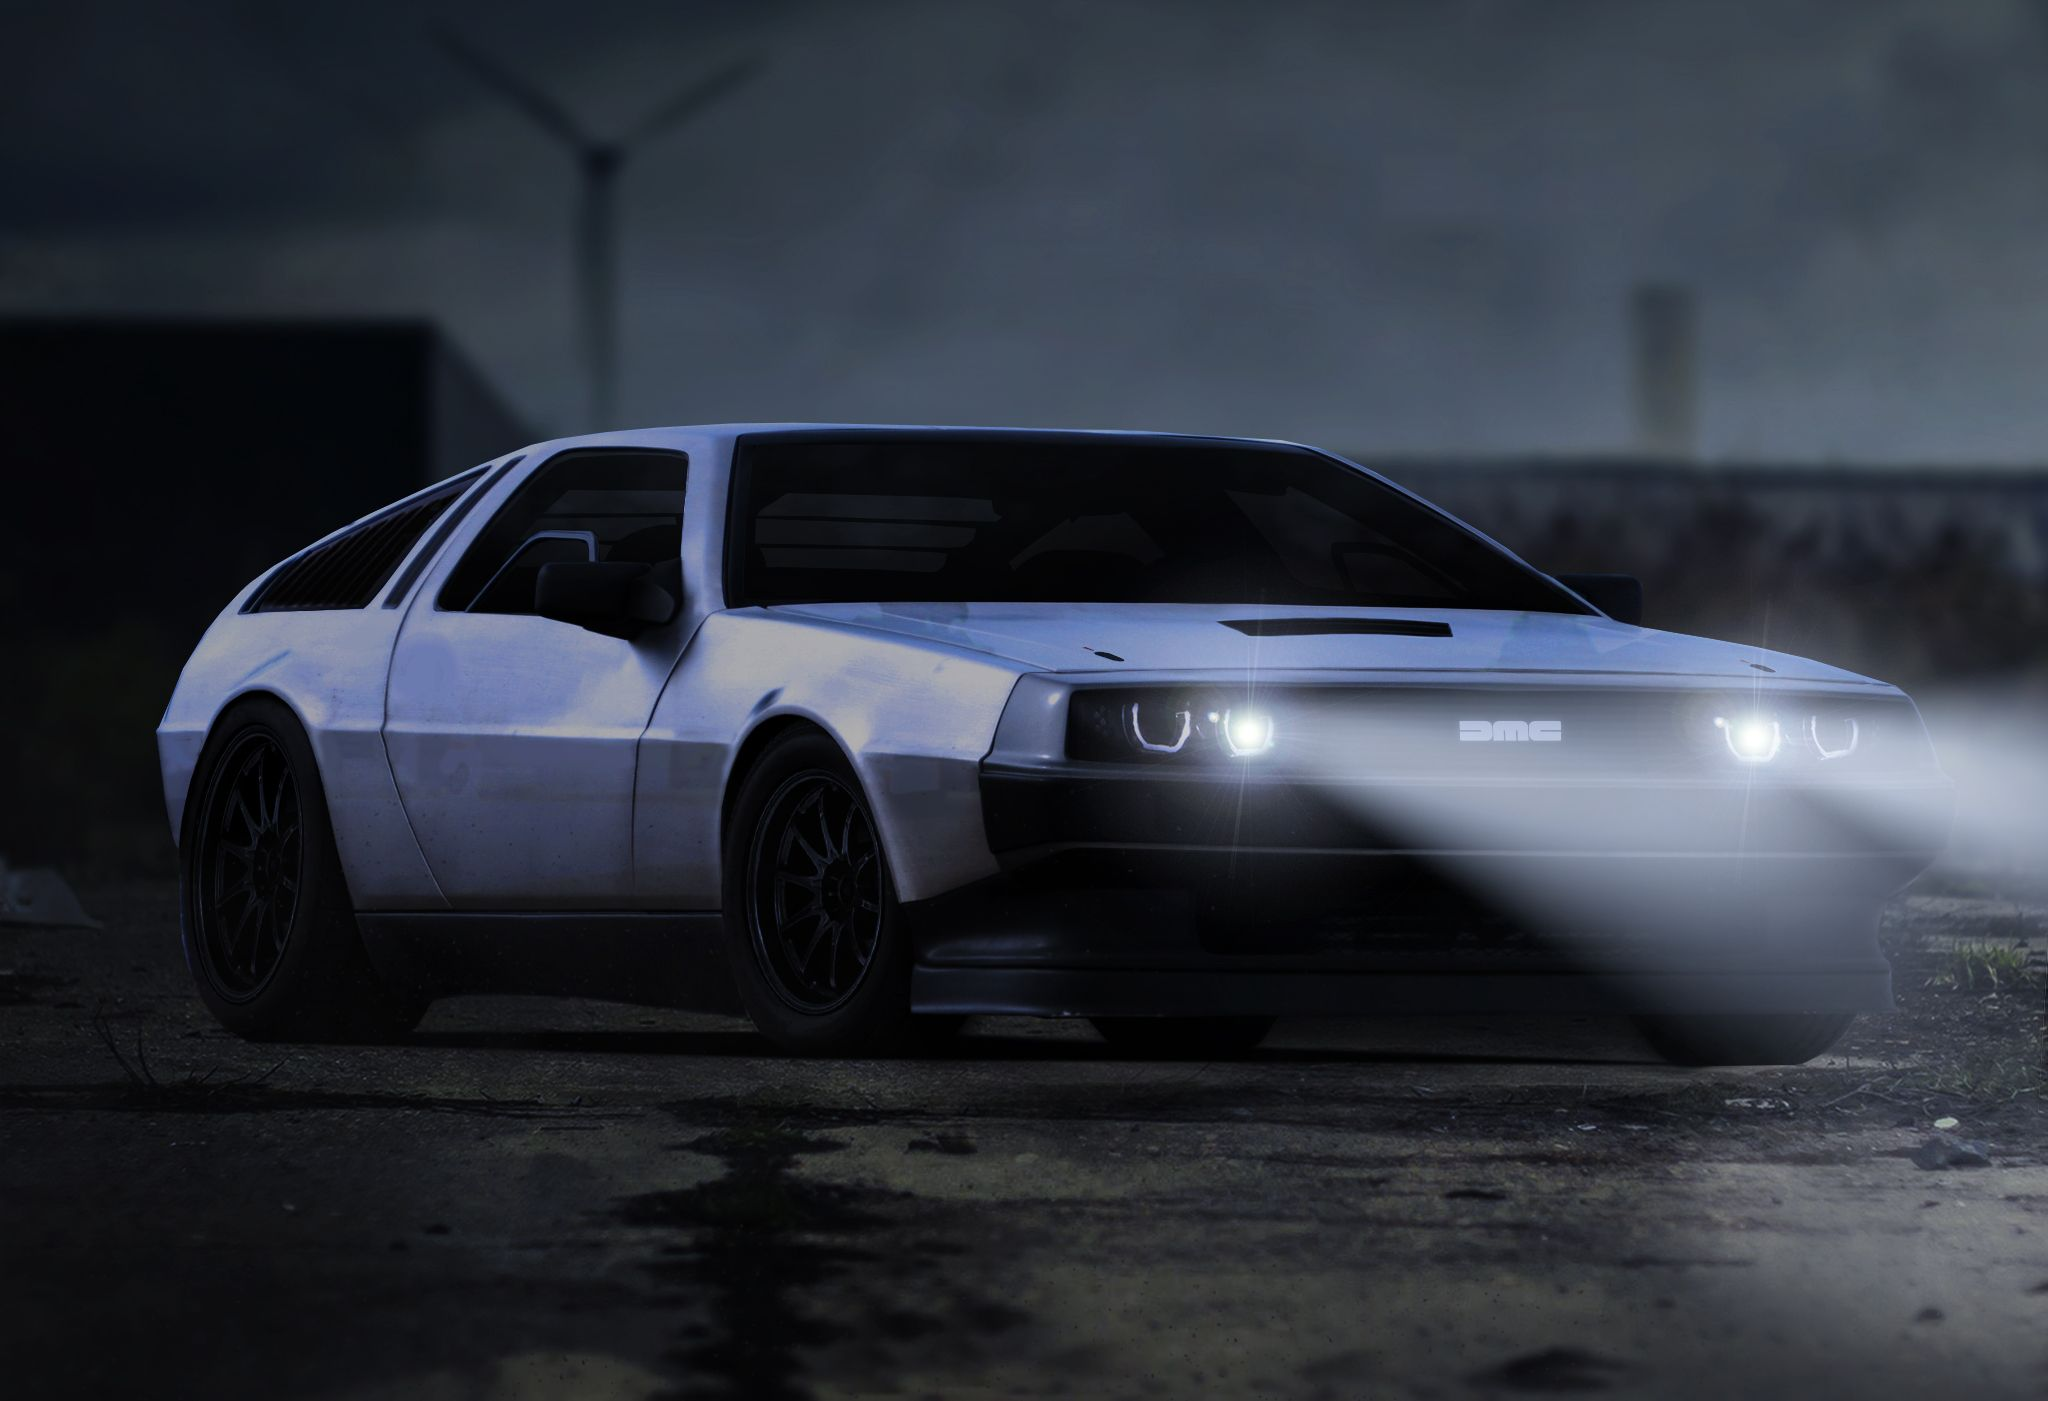 40+ How many delorean cars were made trends